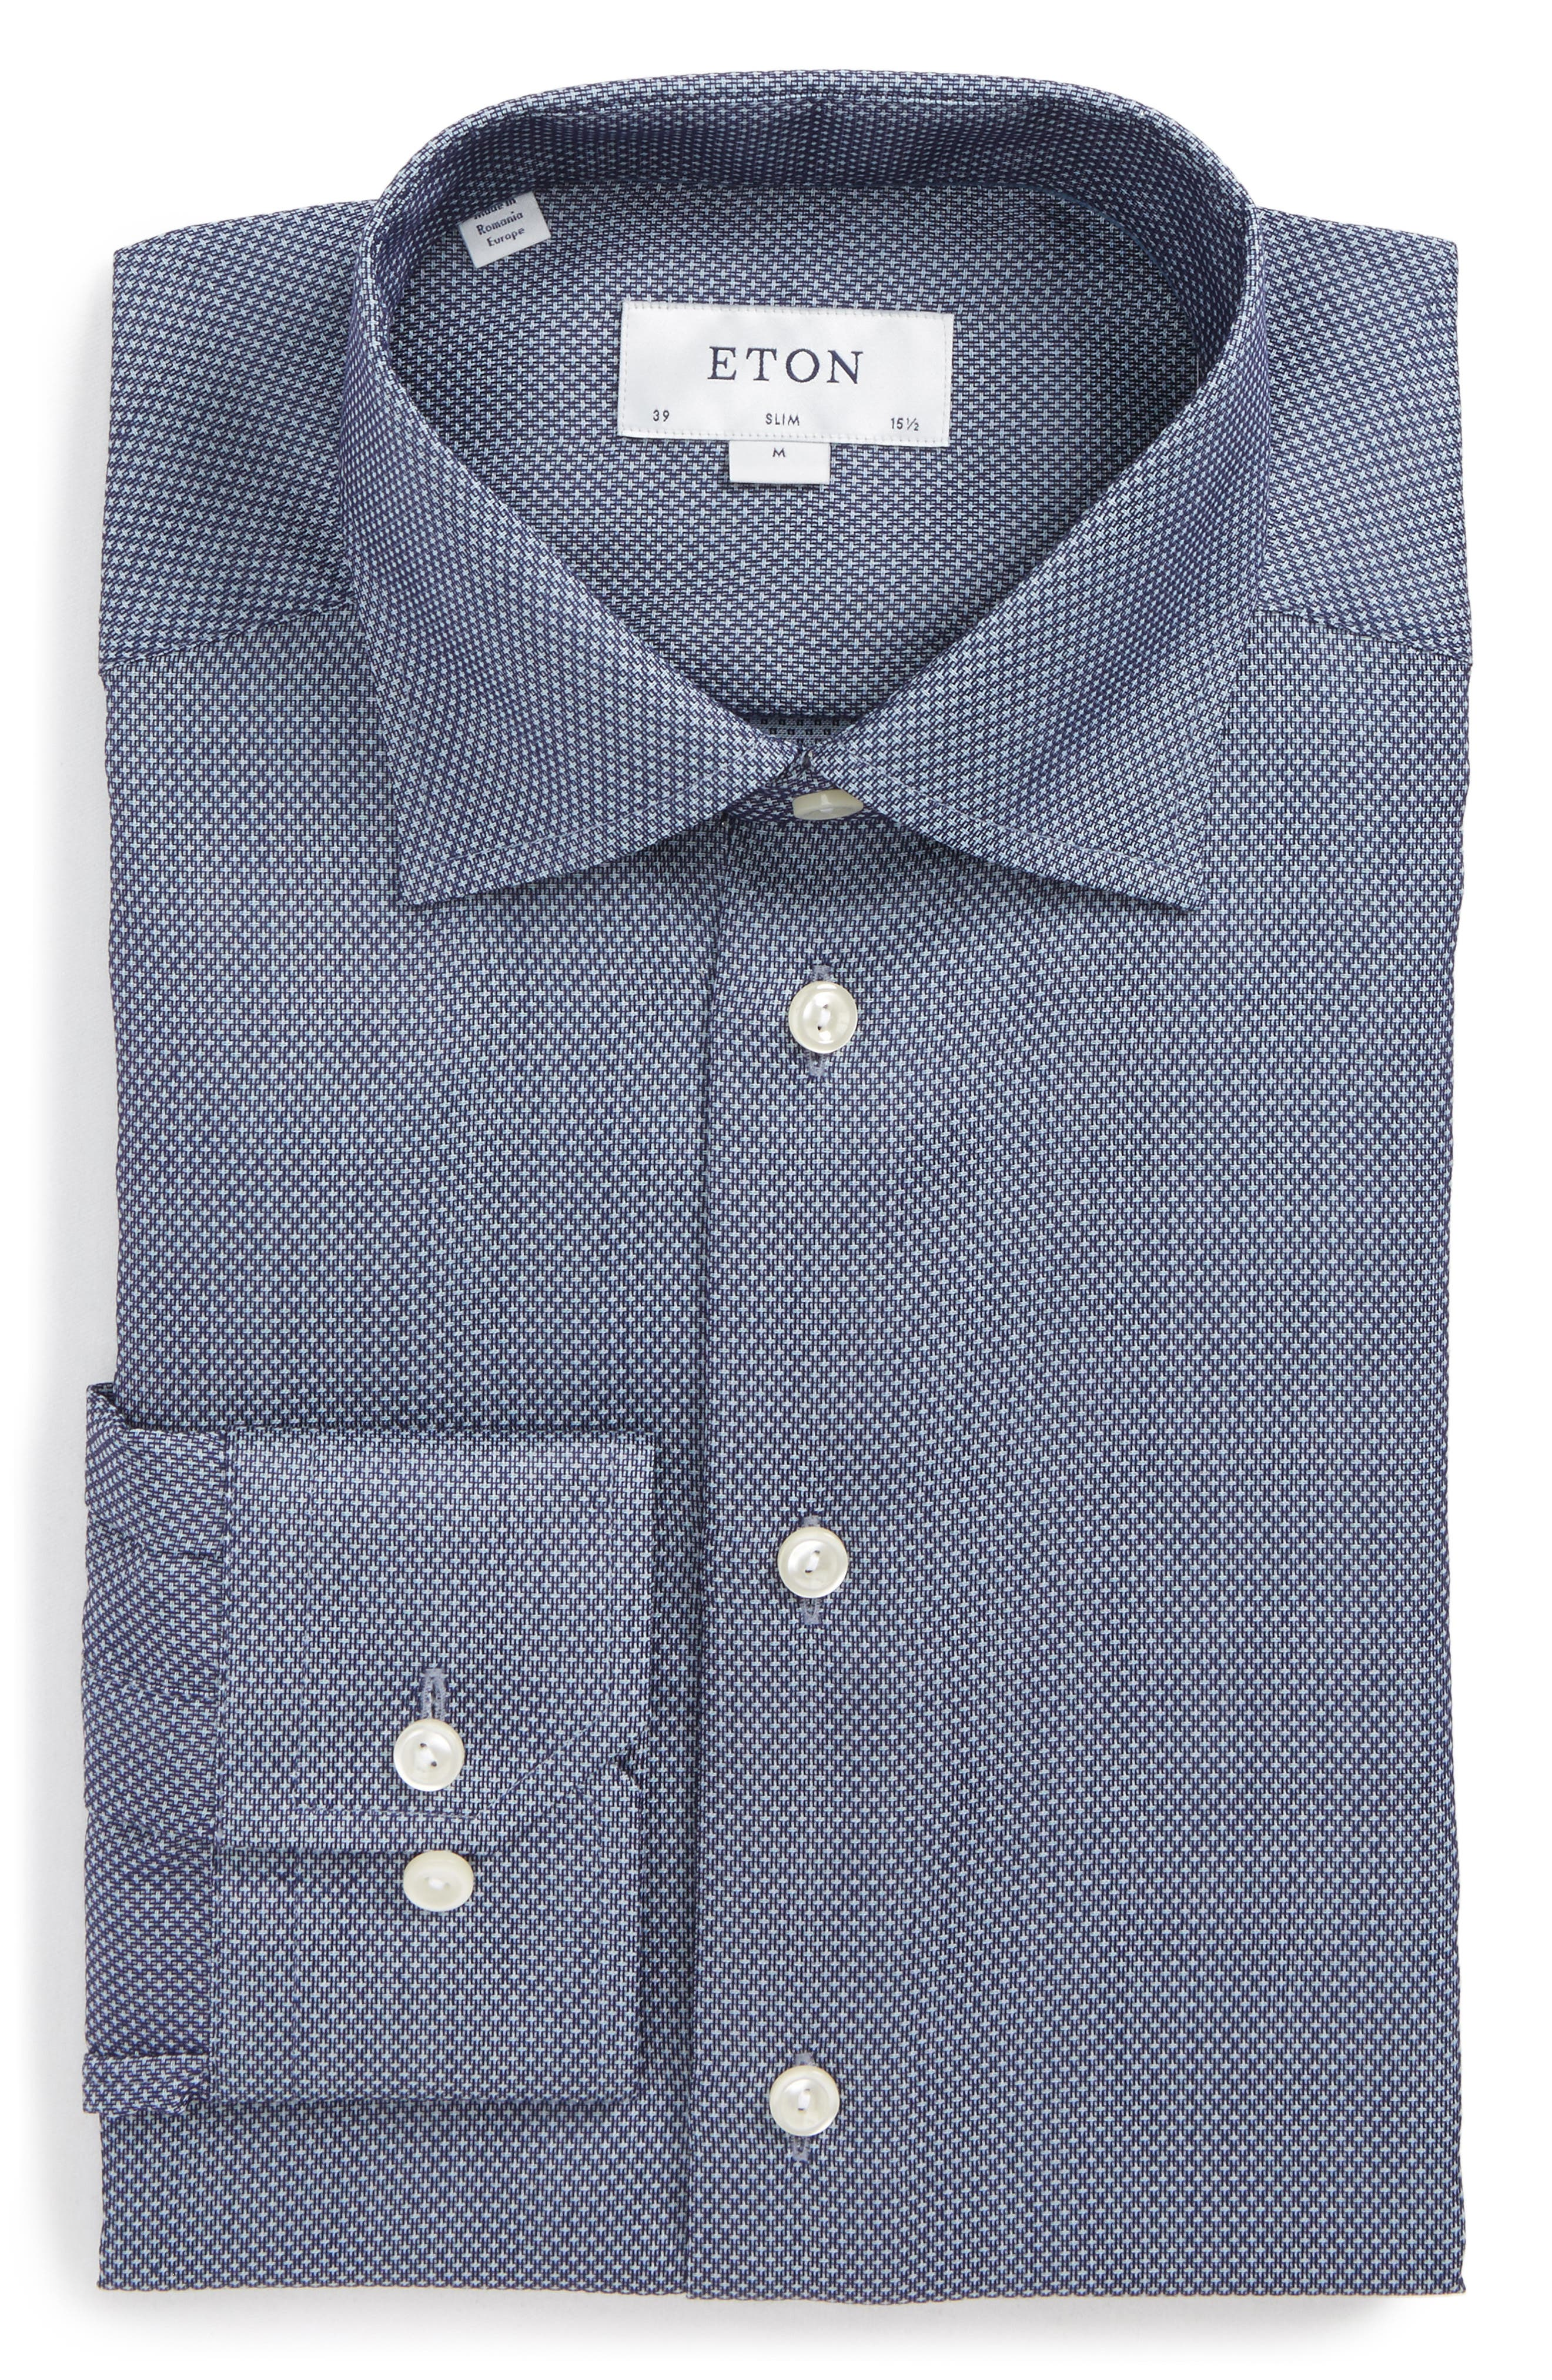 Eton Slim Fit Microprint Dress Shirt